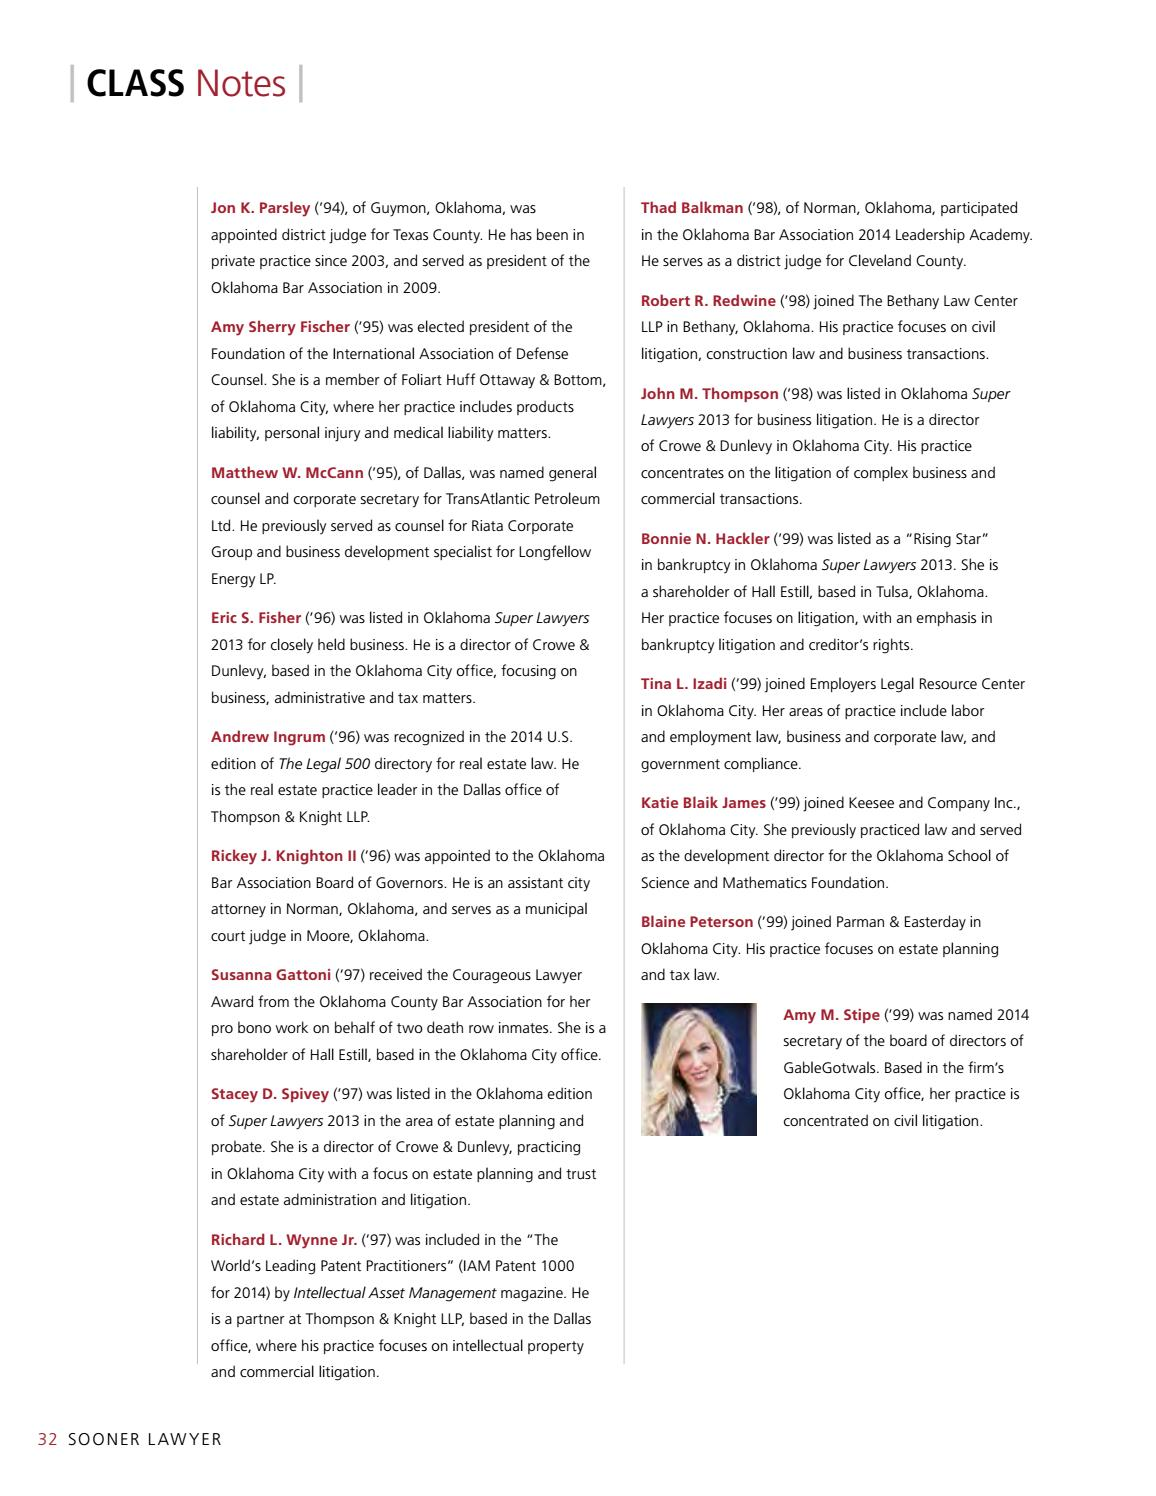 Sooner Lawyer: Fall 2014 by University of Oklahoma College